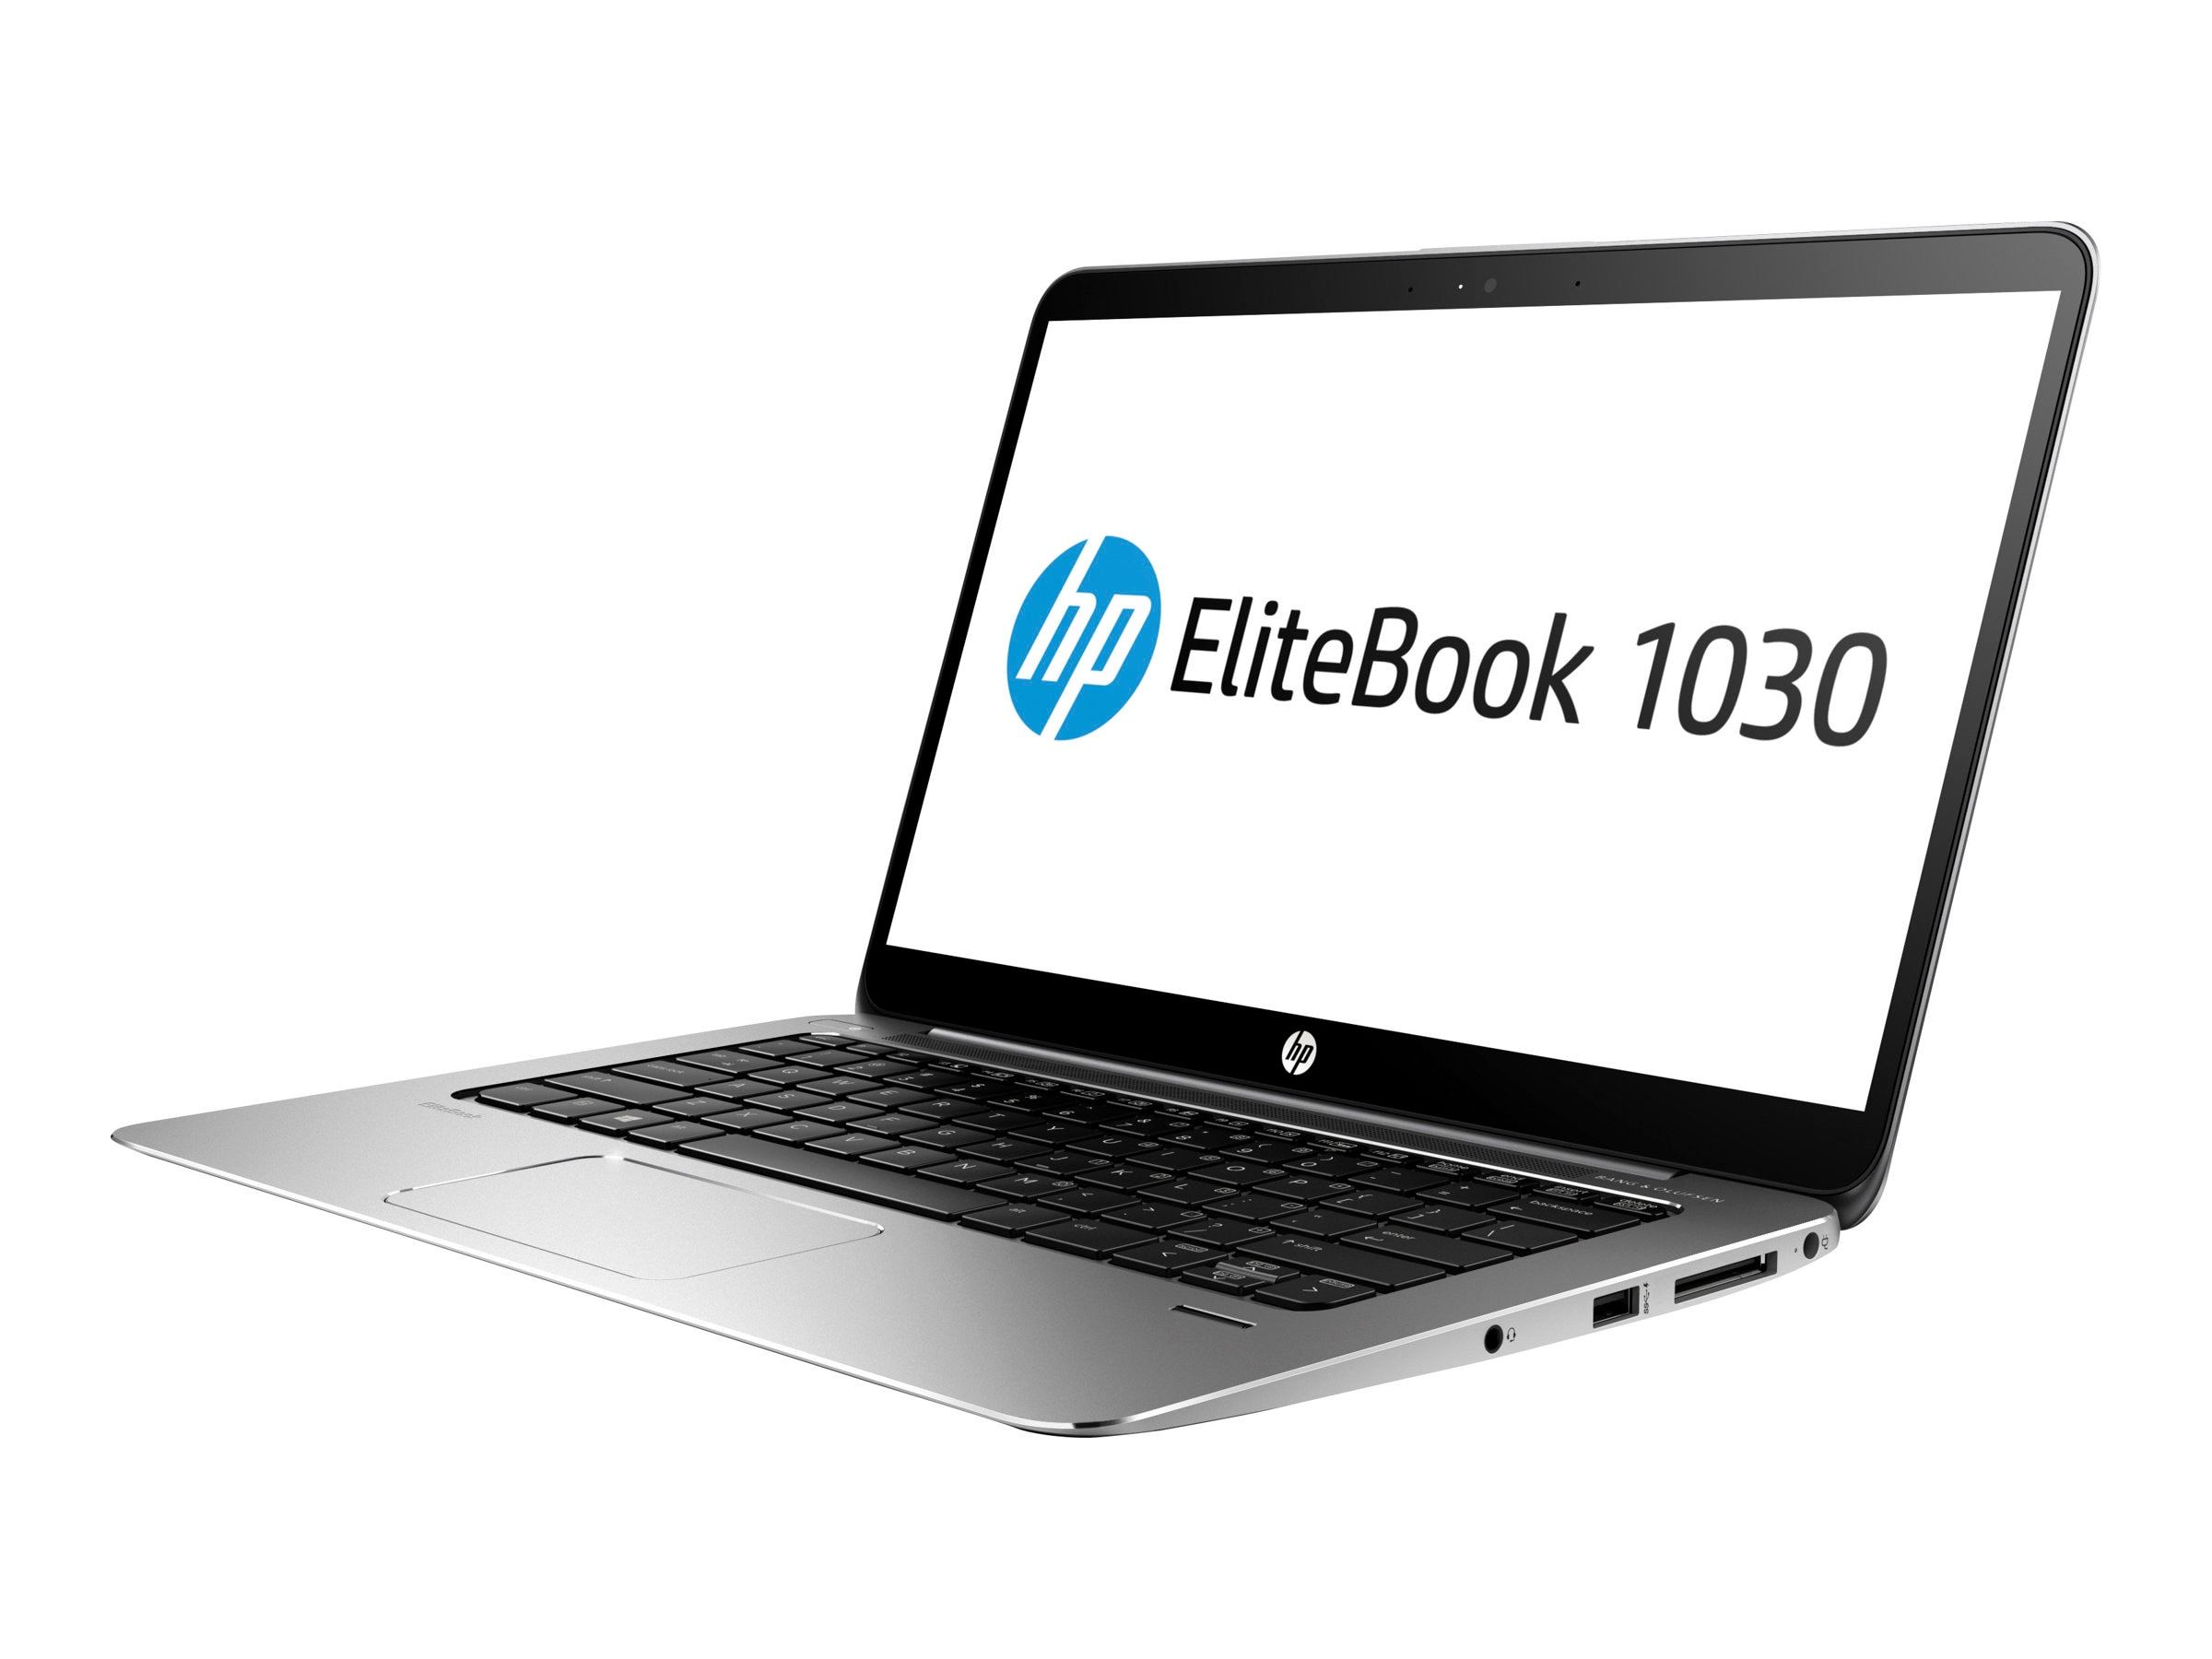 HP EliteBook 1030 G1 1.2GHz Core m7 13.3in display